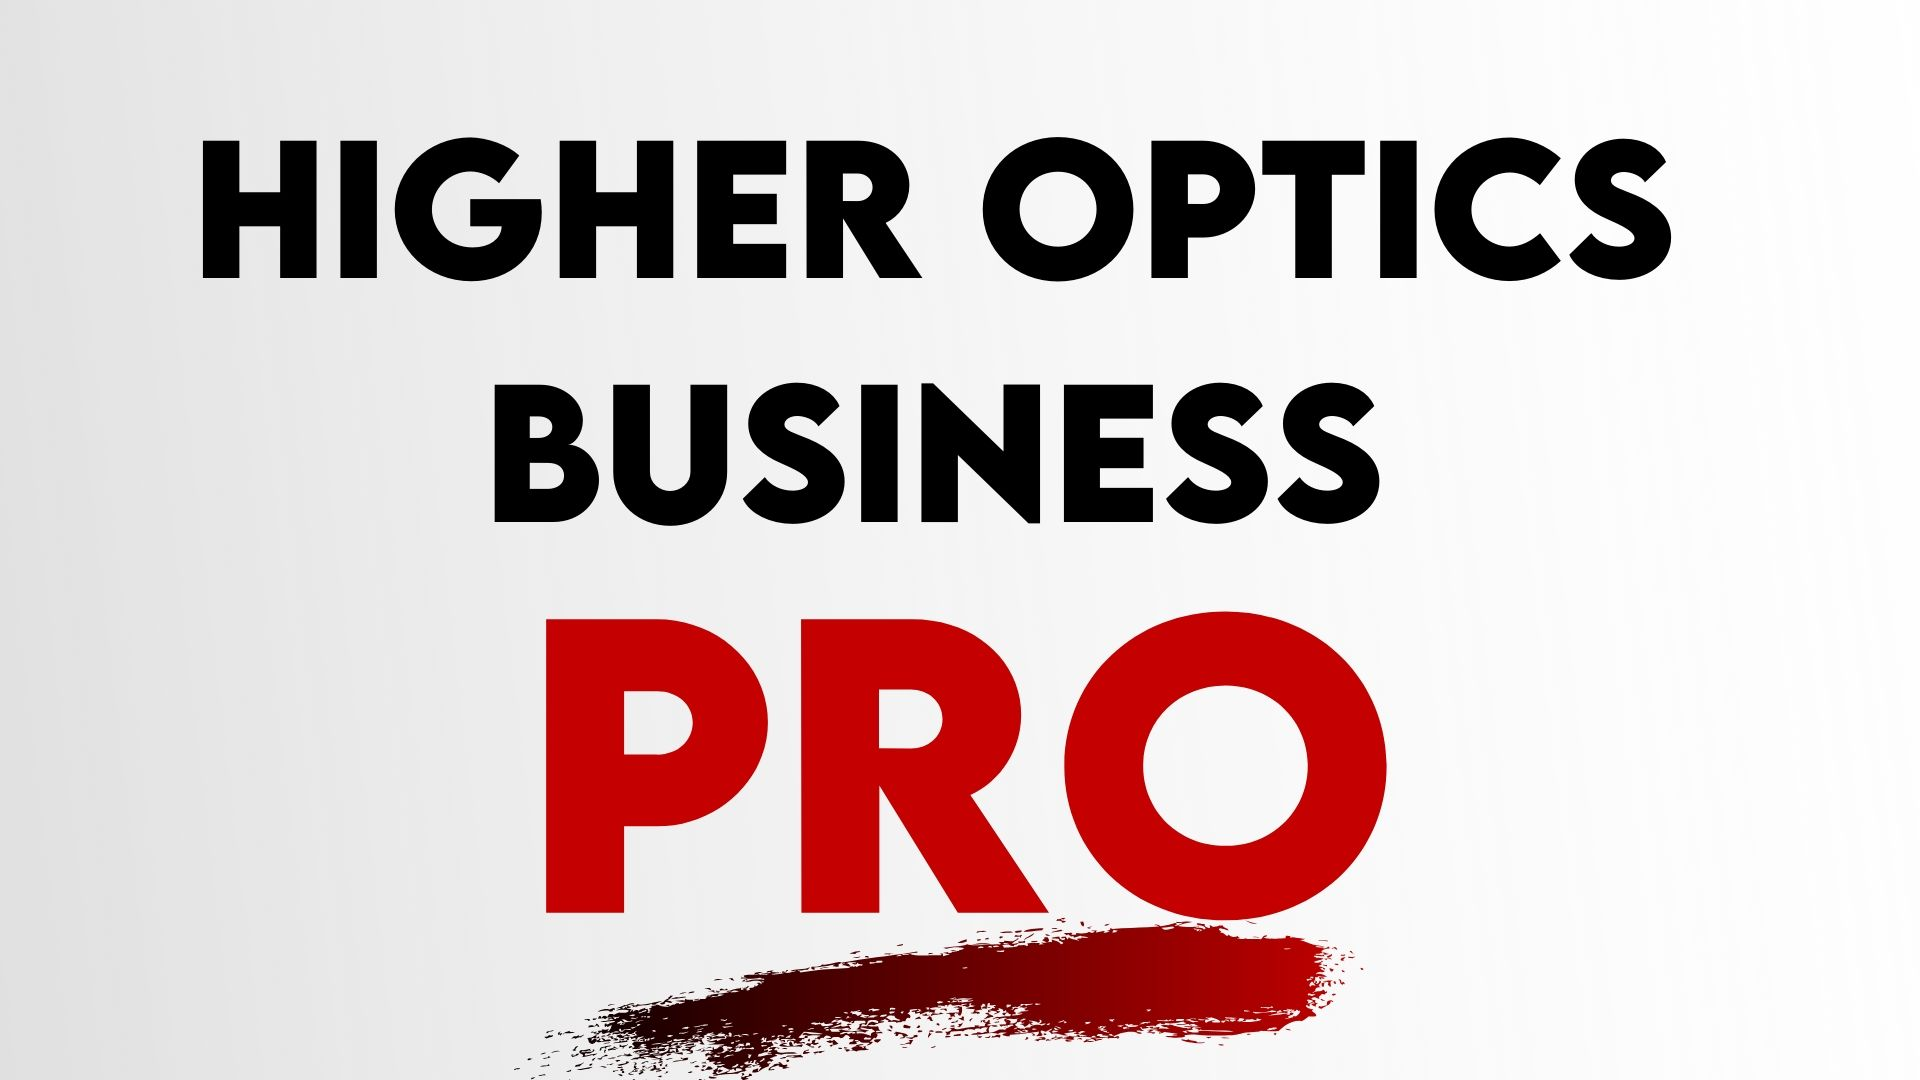 Higher Optics Business Pro